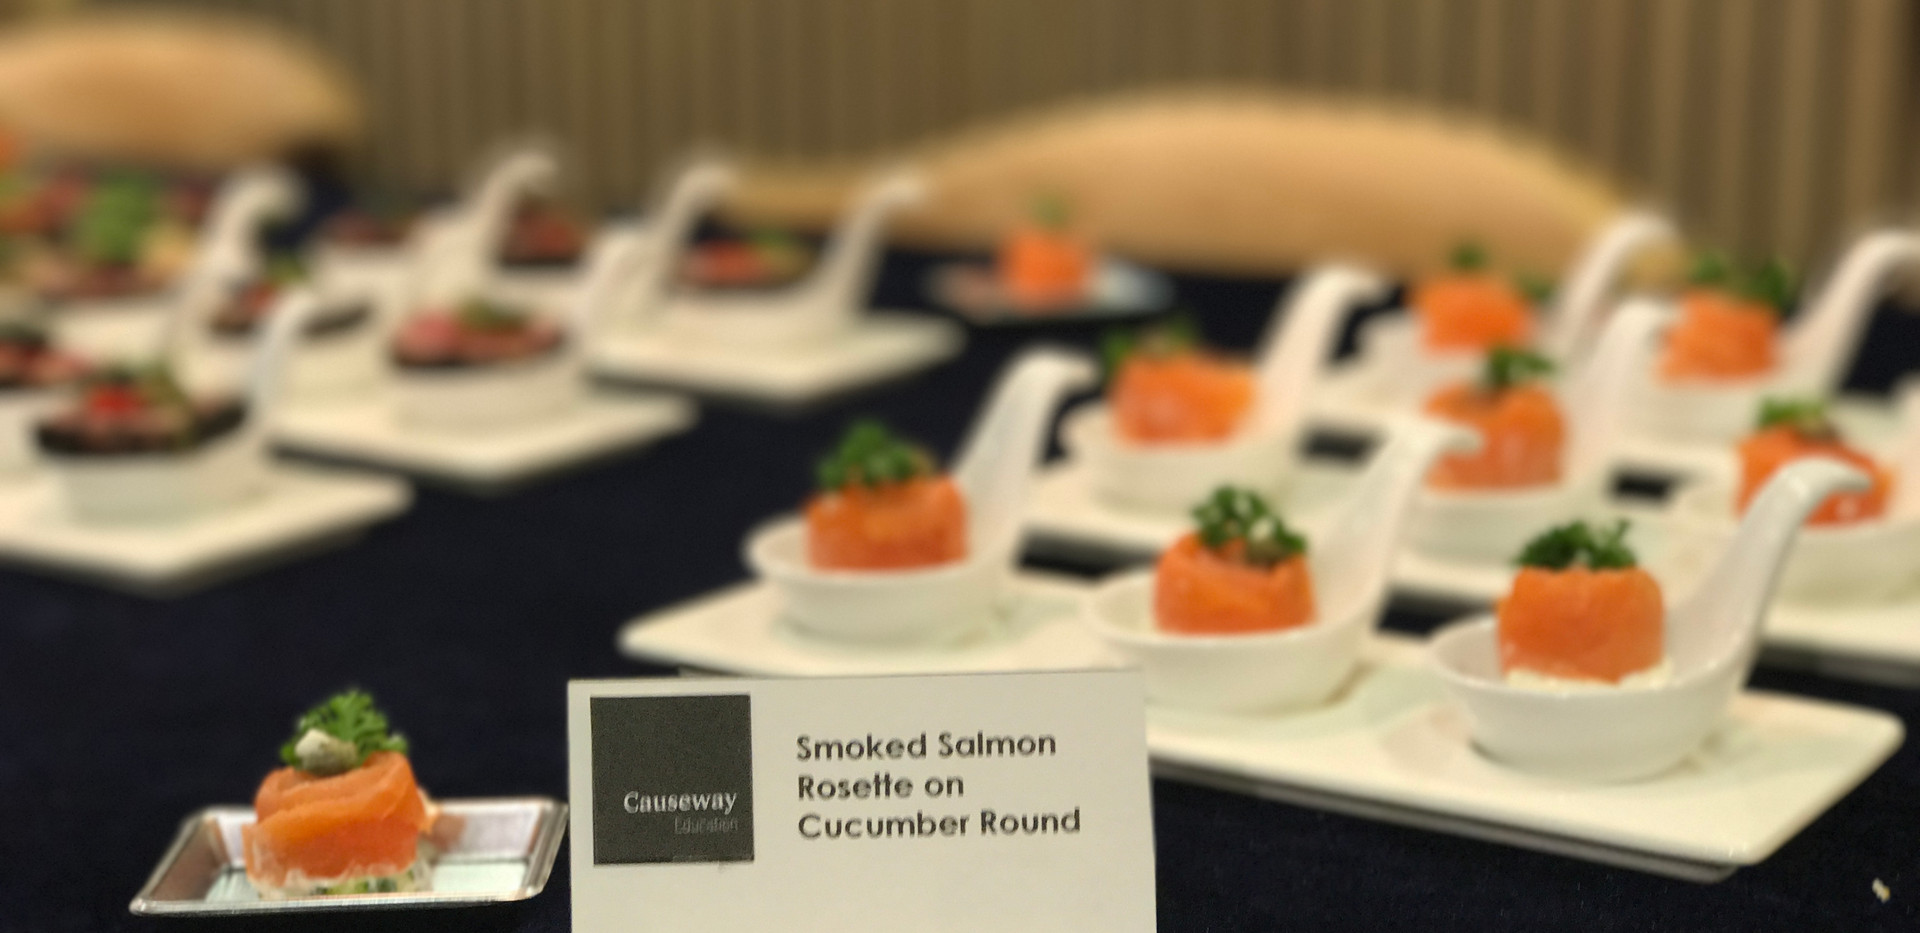 Smoked salmon Rosette on Cucumber Round